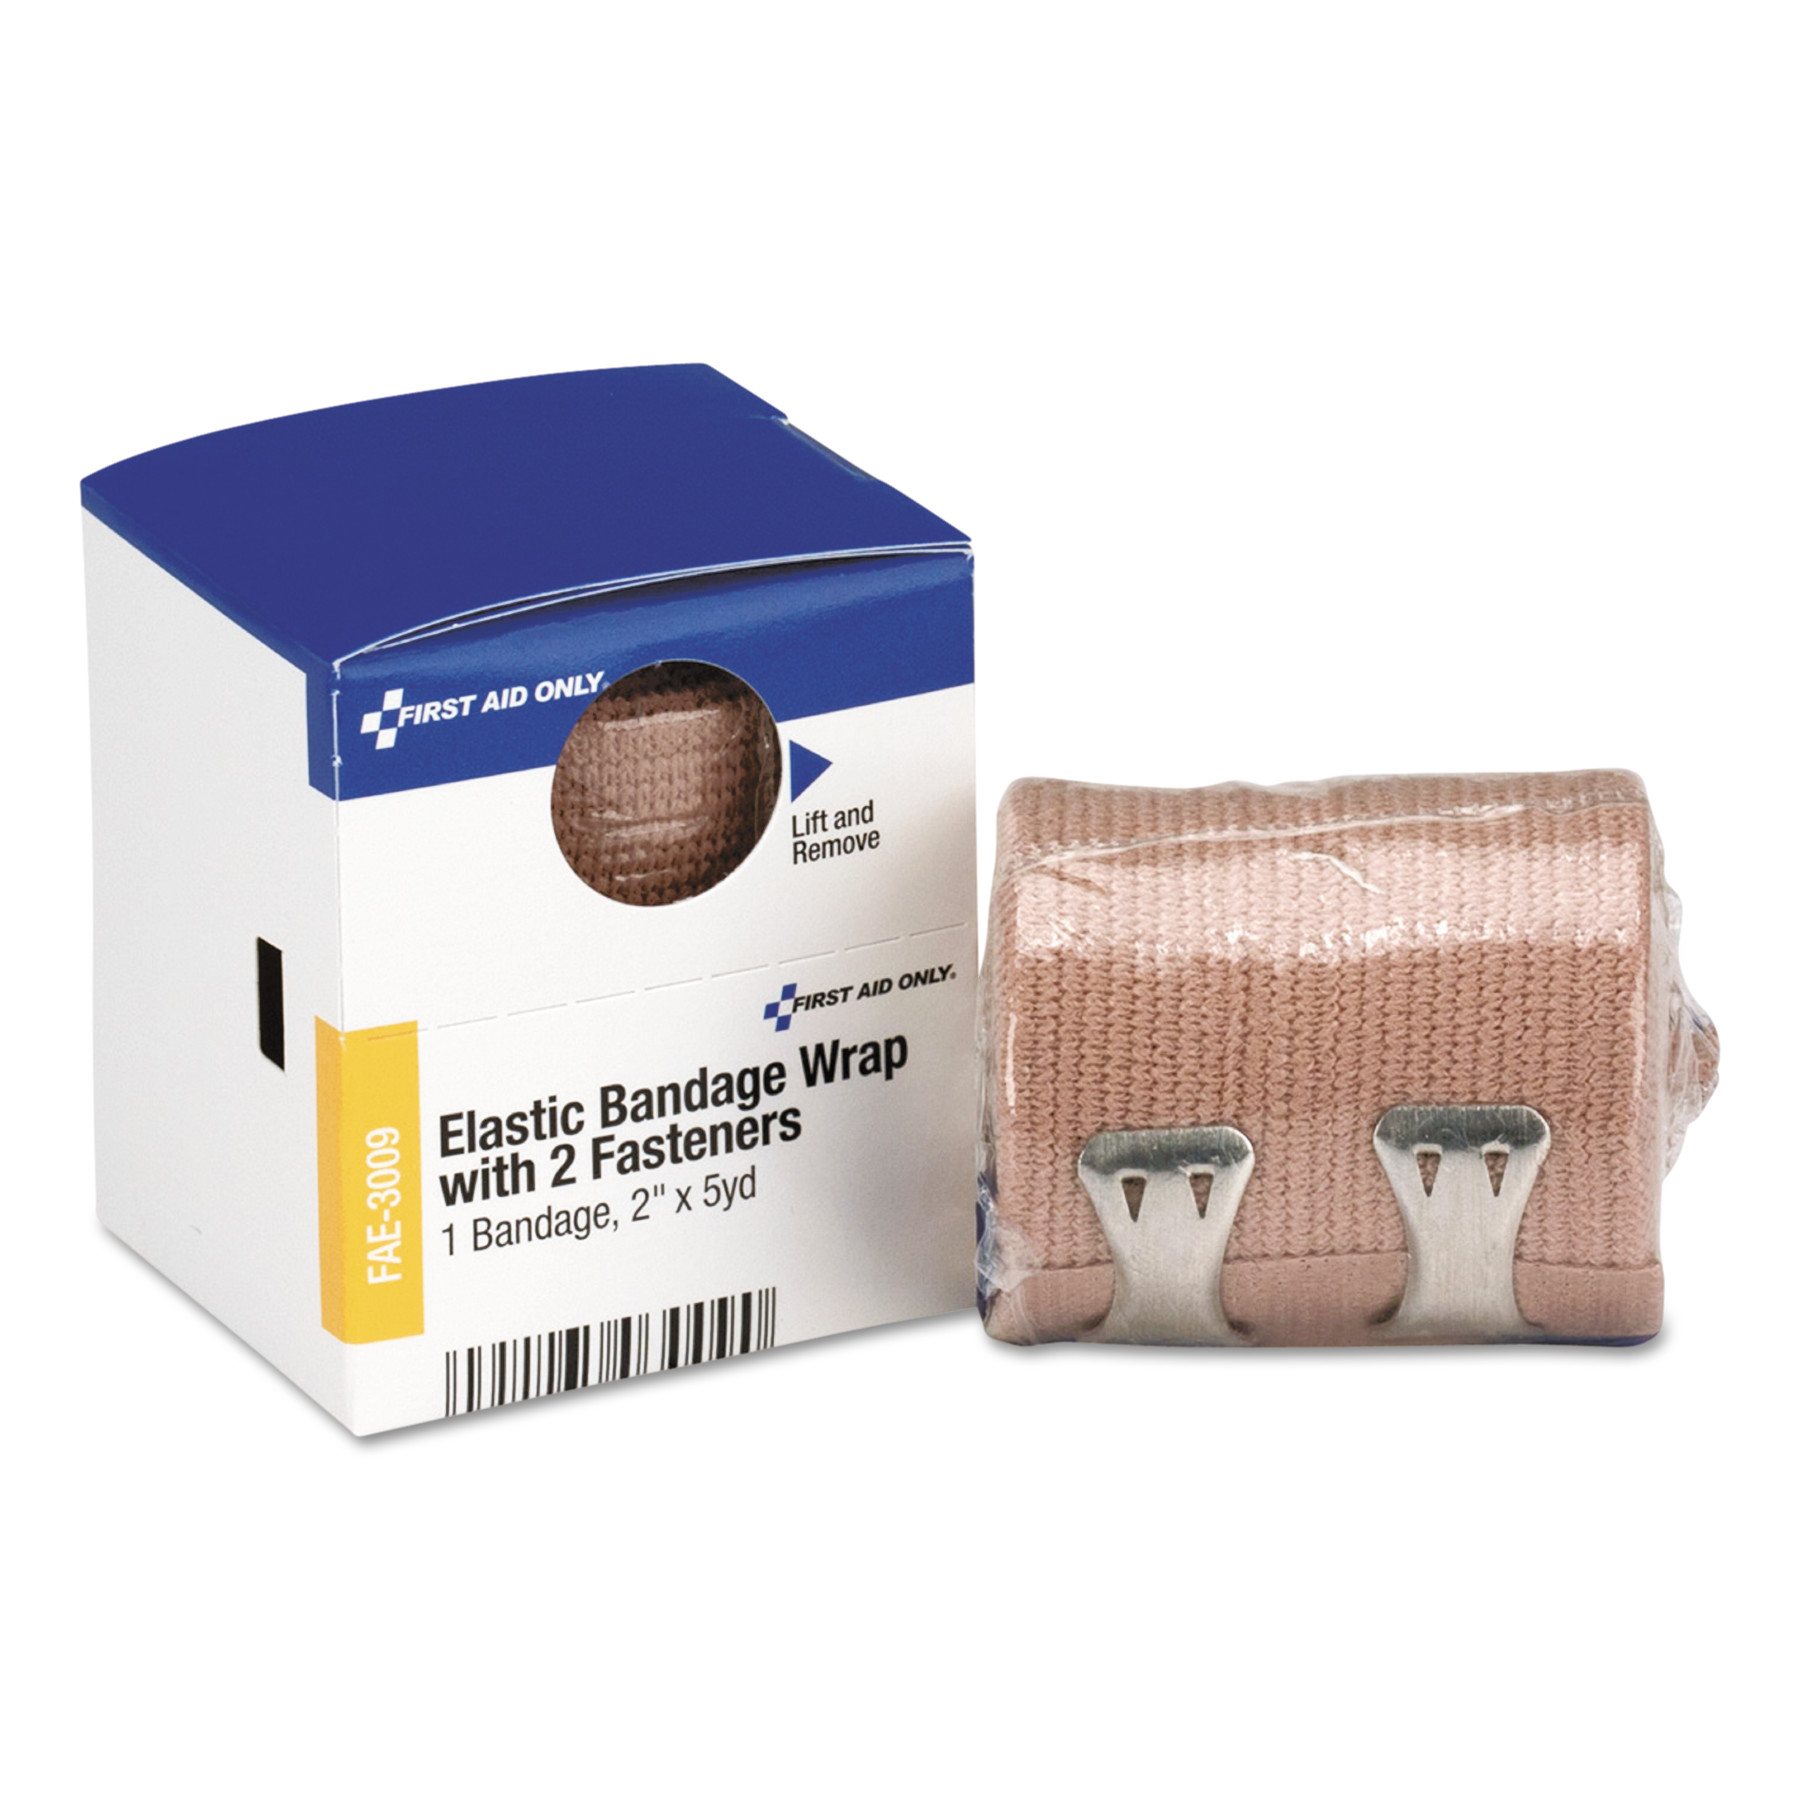 """First Aid Only Elastic Bandage Wrap, 2"""" x 5yds, Latex-Free"""